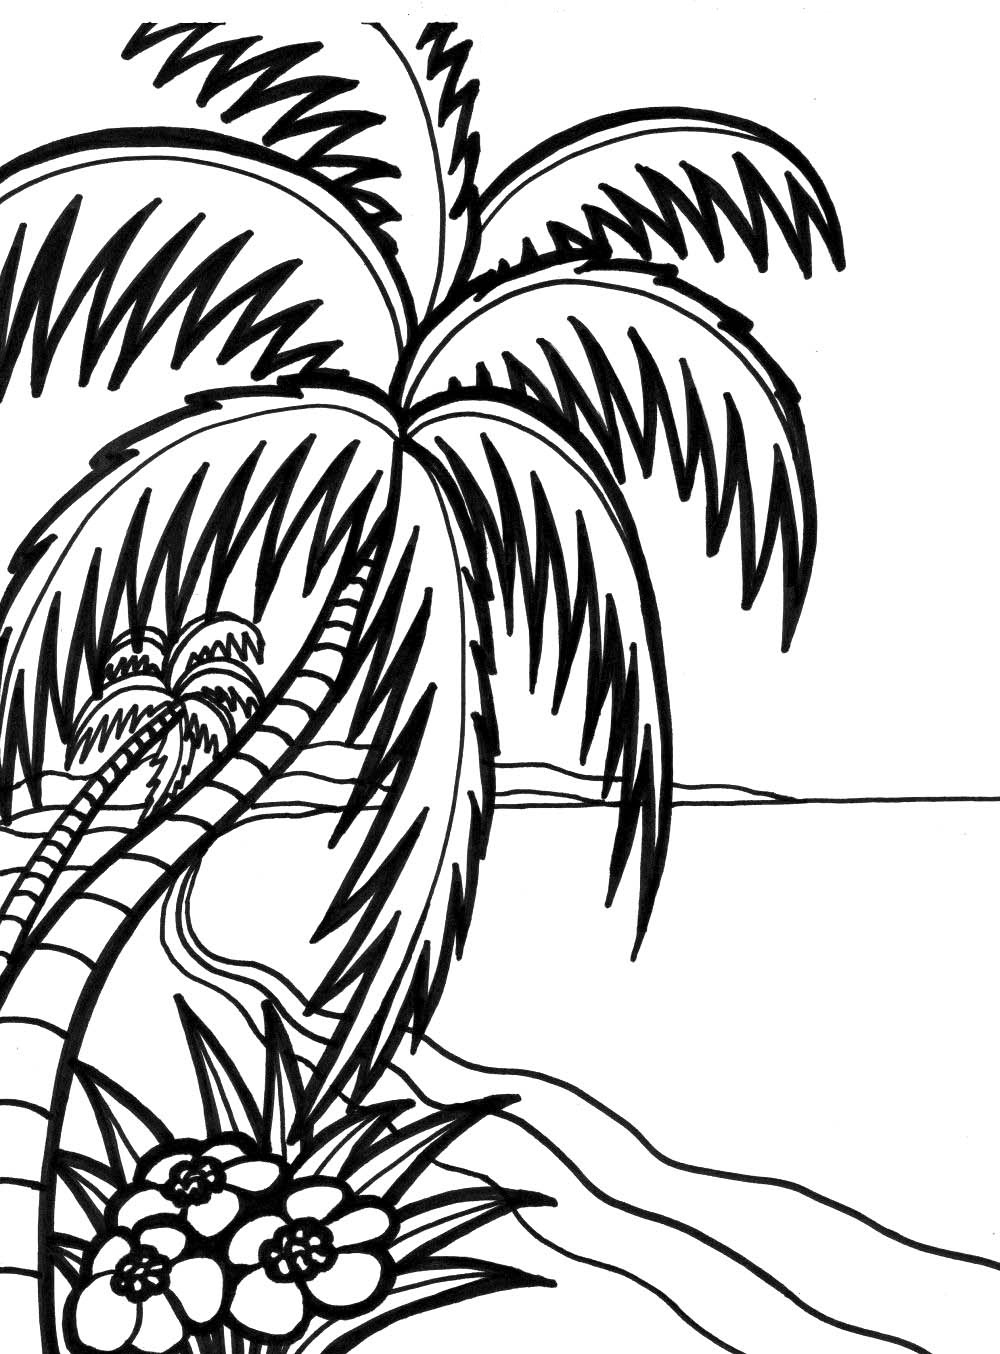 ocean plants coloring pages adults | coral colors coral reef ... | 1354x1000